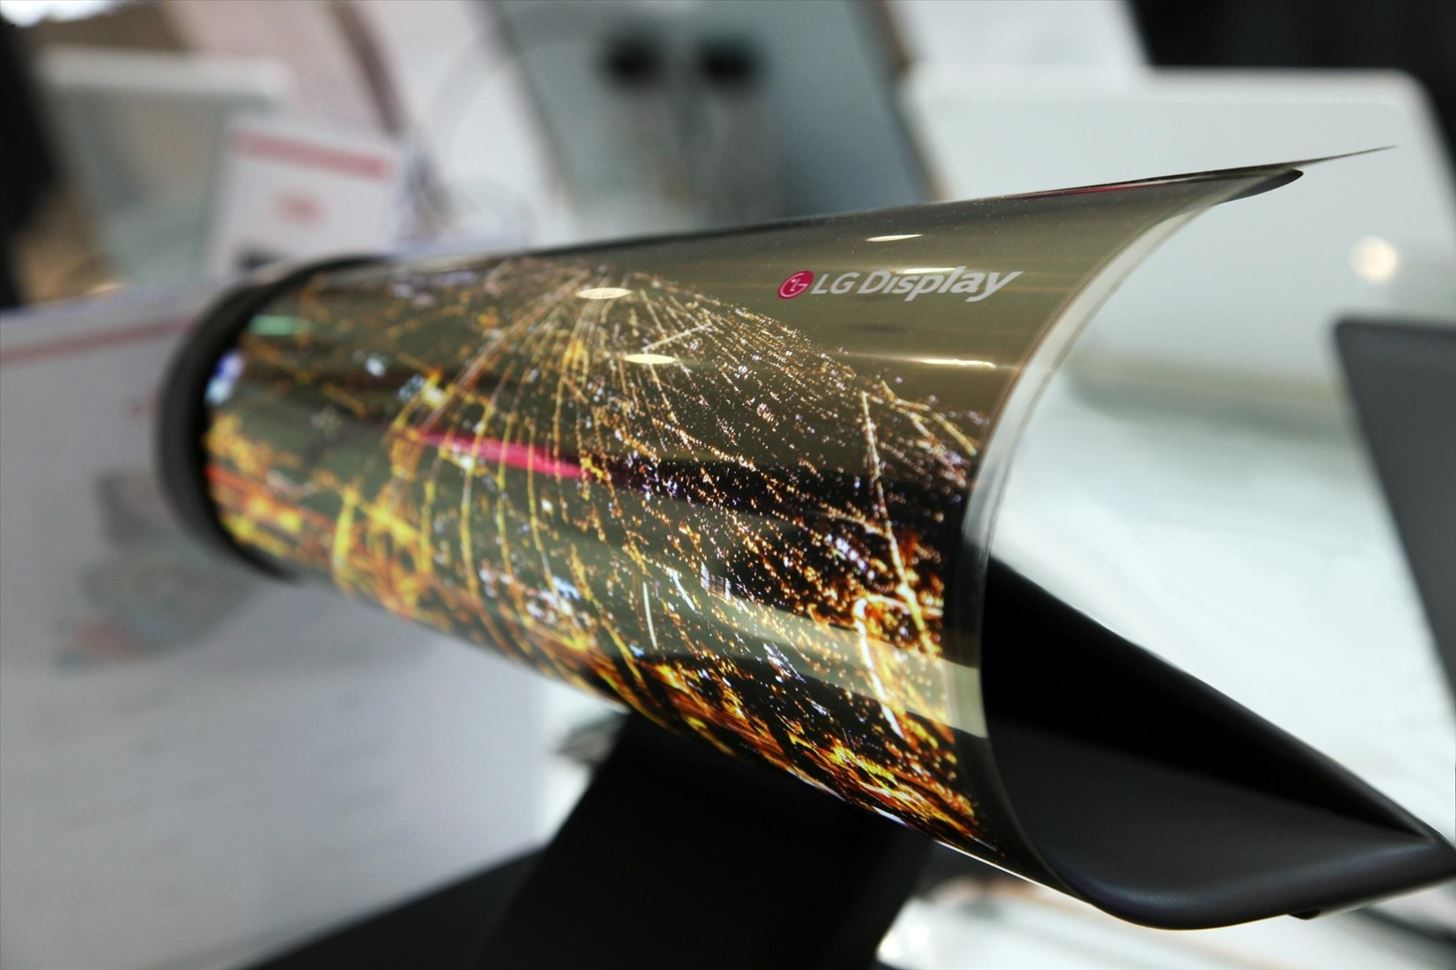 CES 2016: LG Shows Off Its Newspaper-Like Flexible Screen